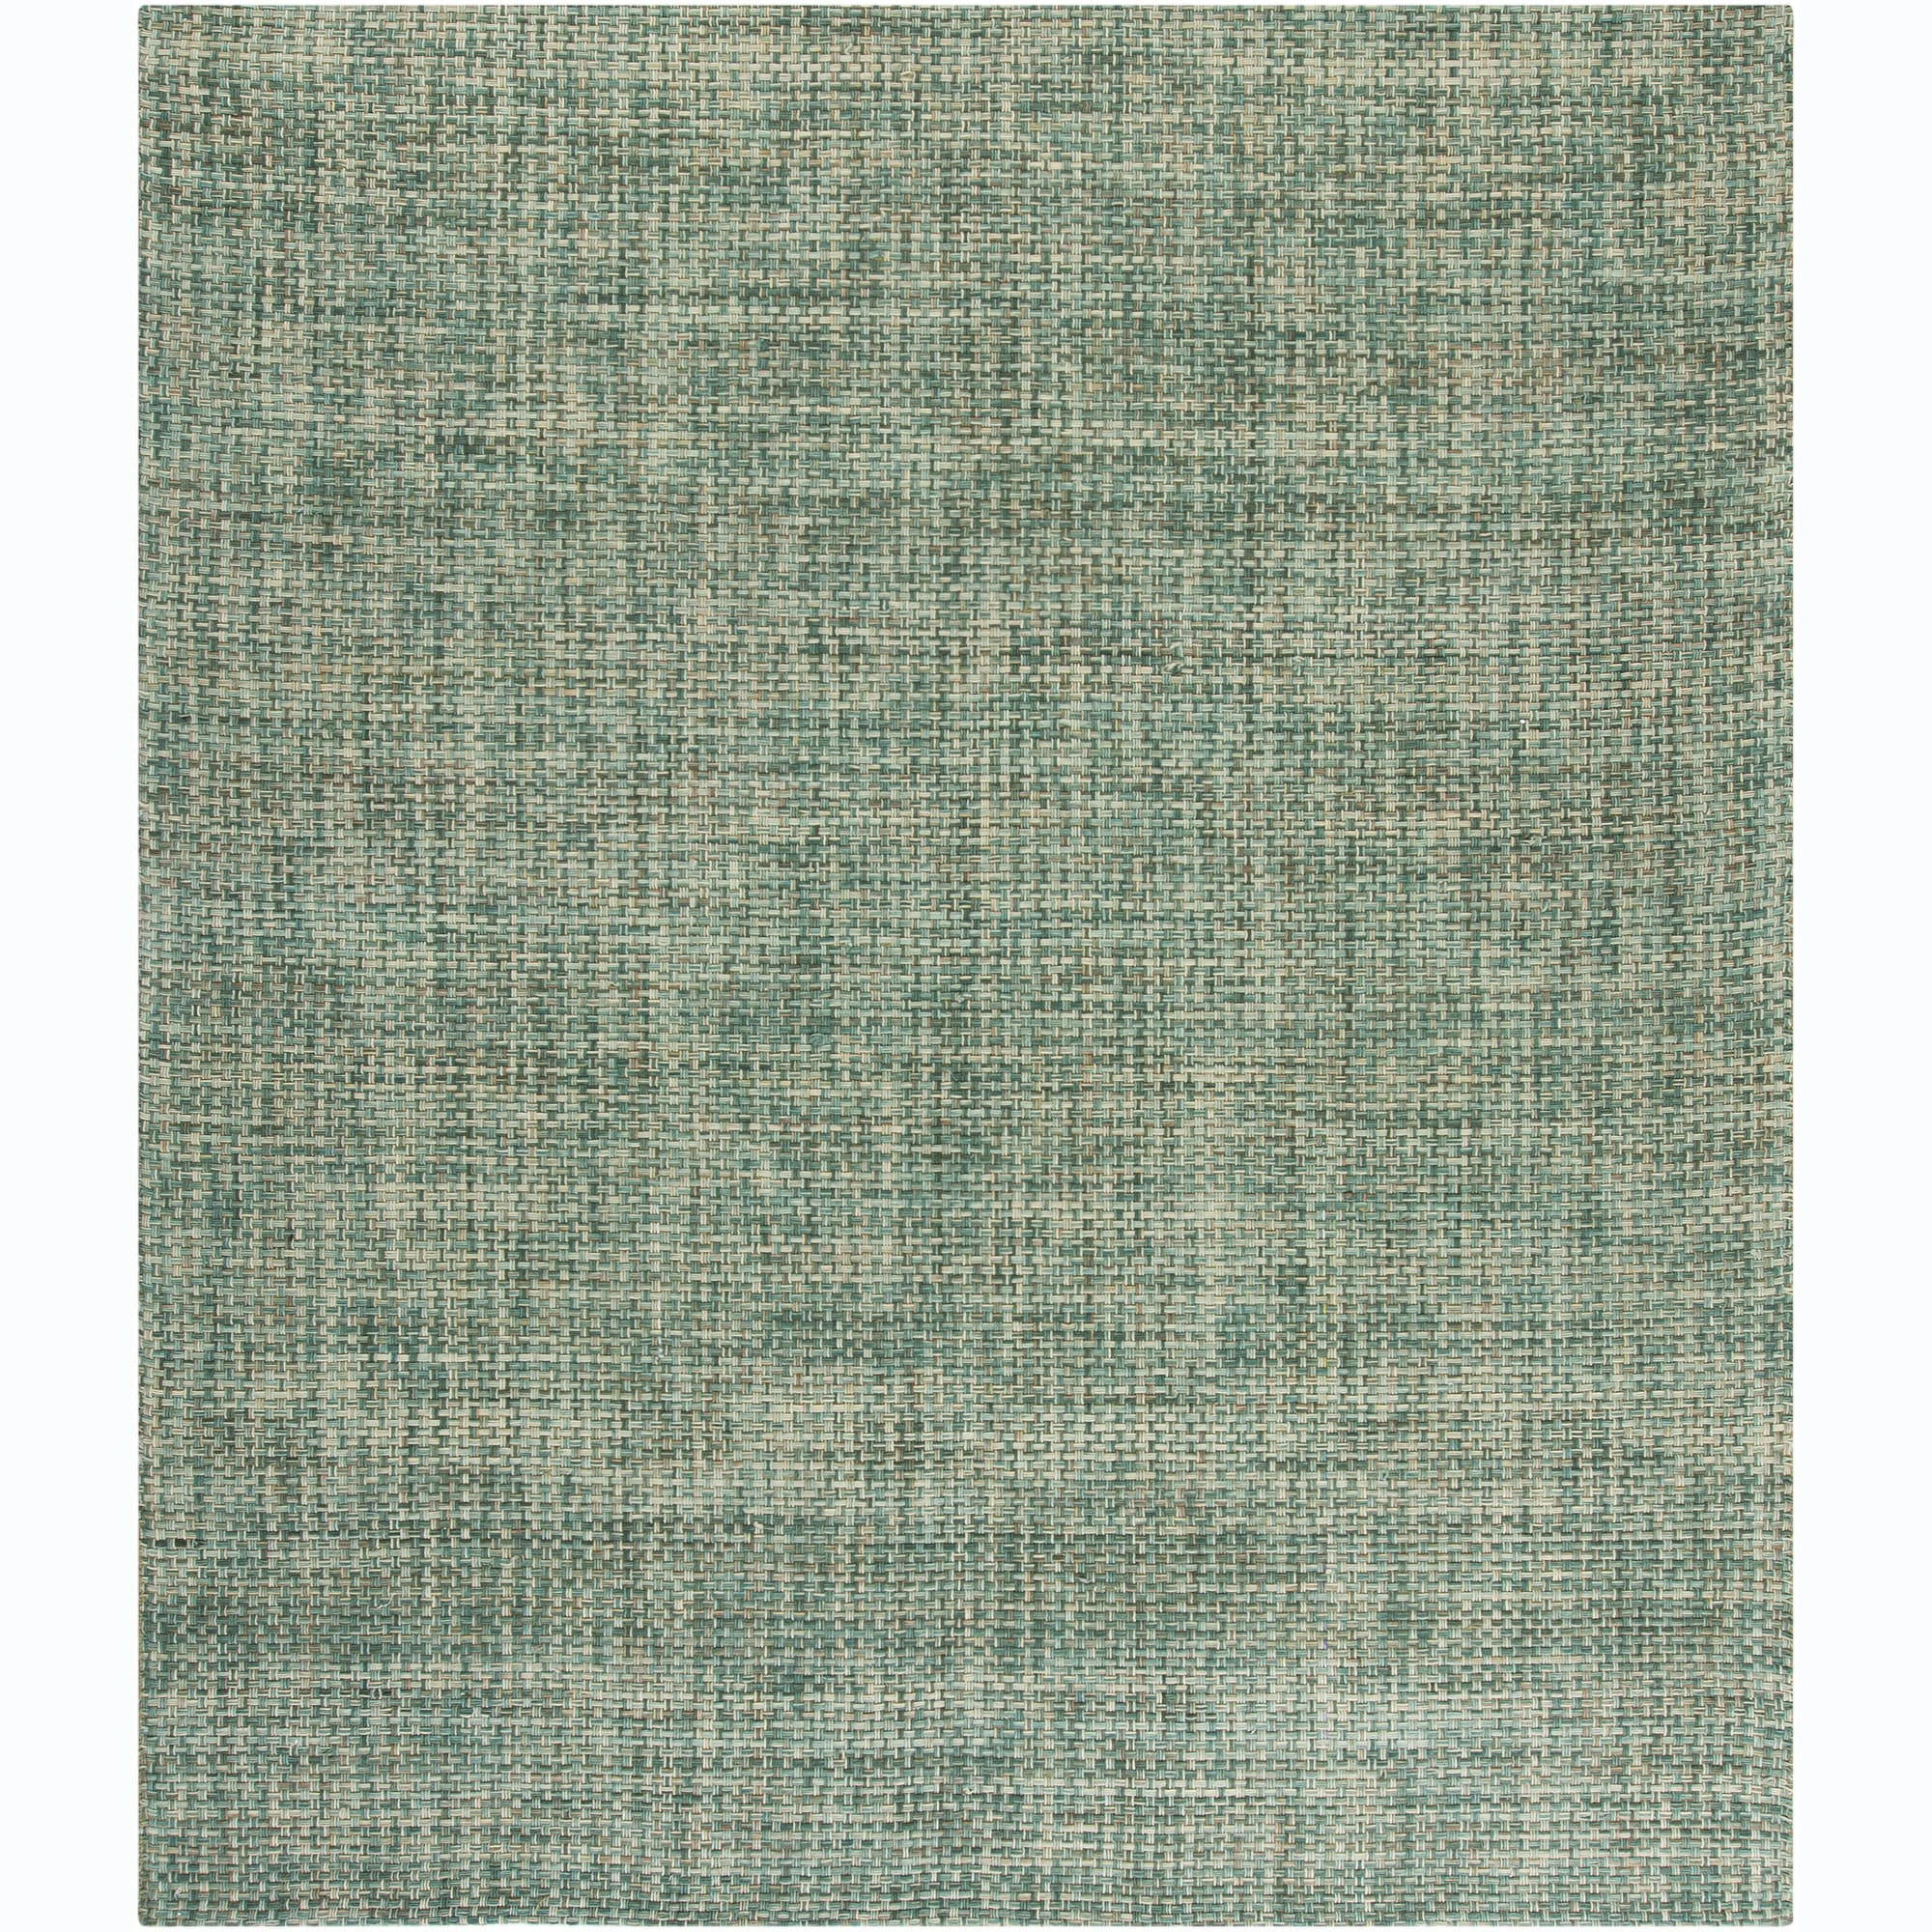 Artist's Loom Hand-woven Contemporary Abstract Wool Rug - 7'9 x 10'6